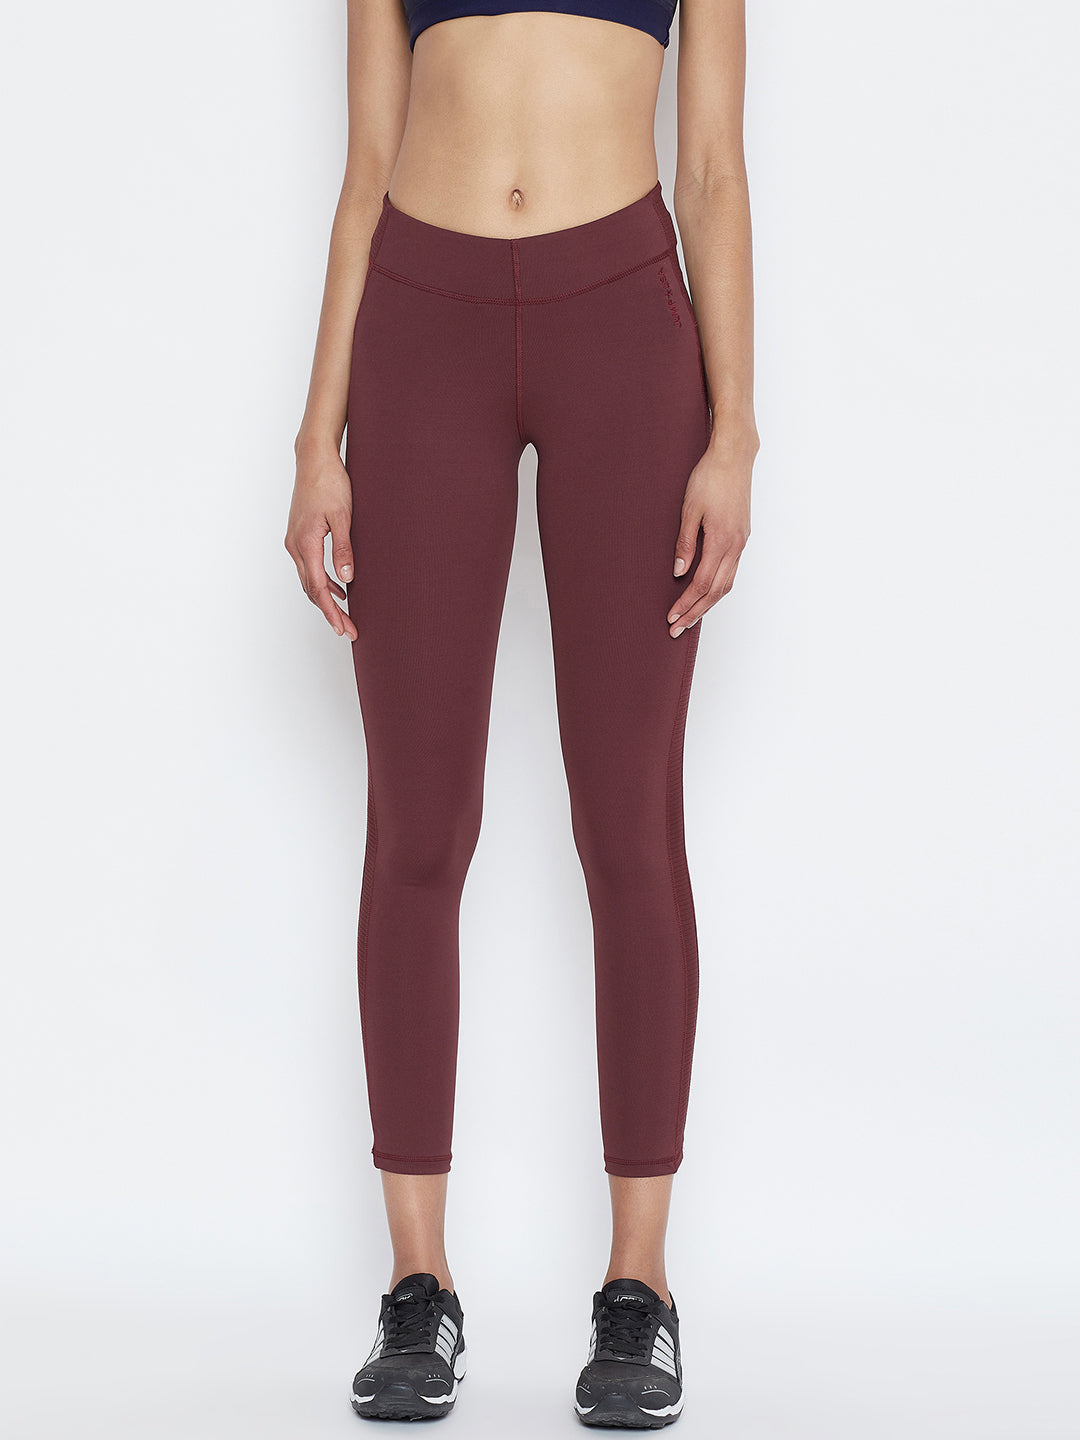 JUMP USA Women Solid Active Wear Maroon Tights